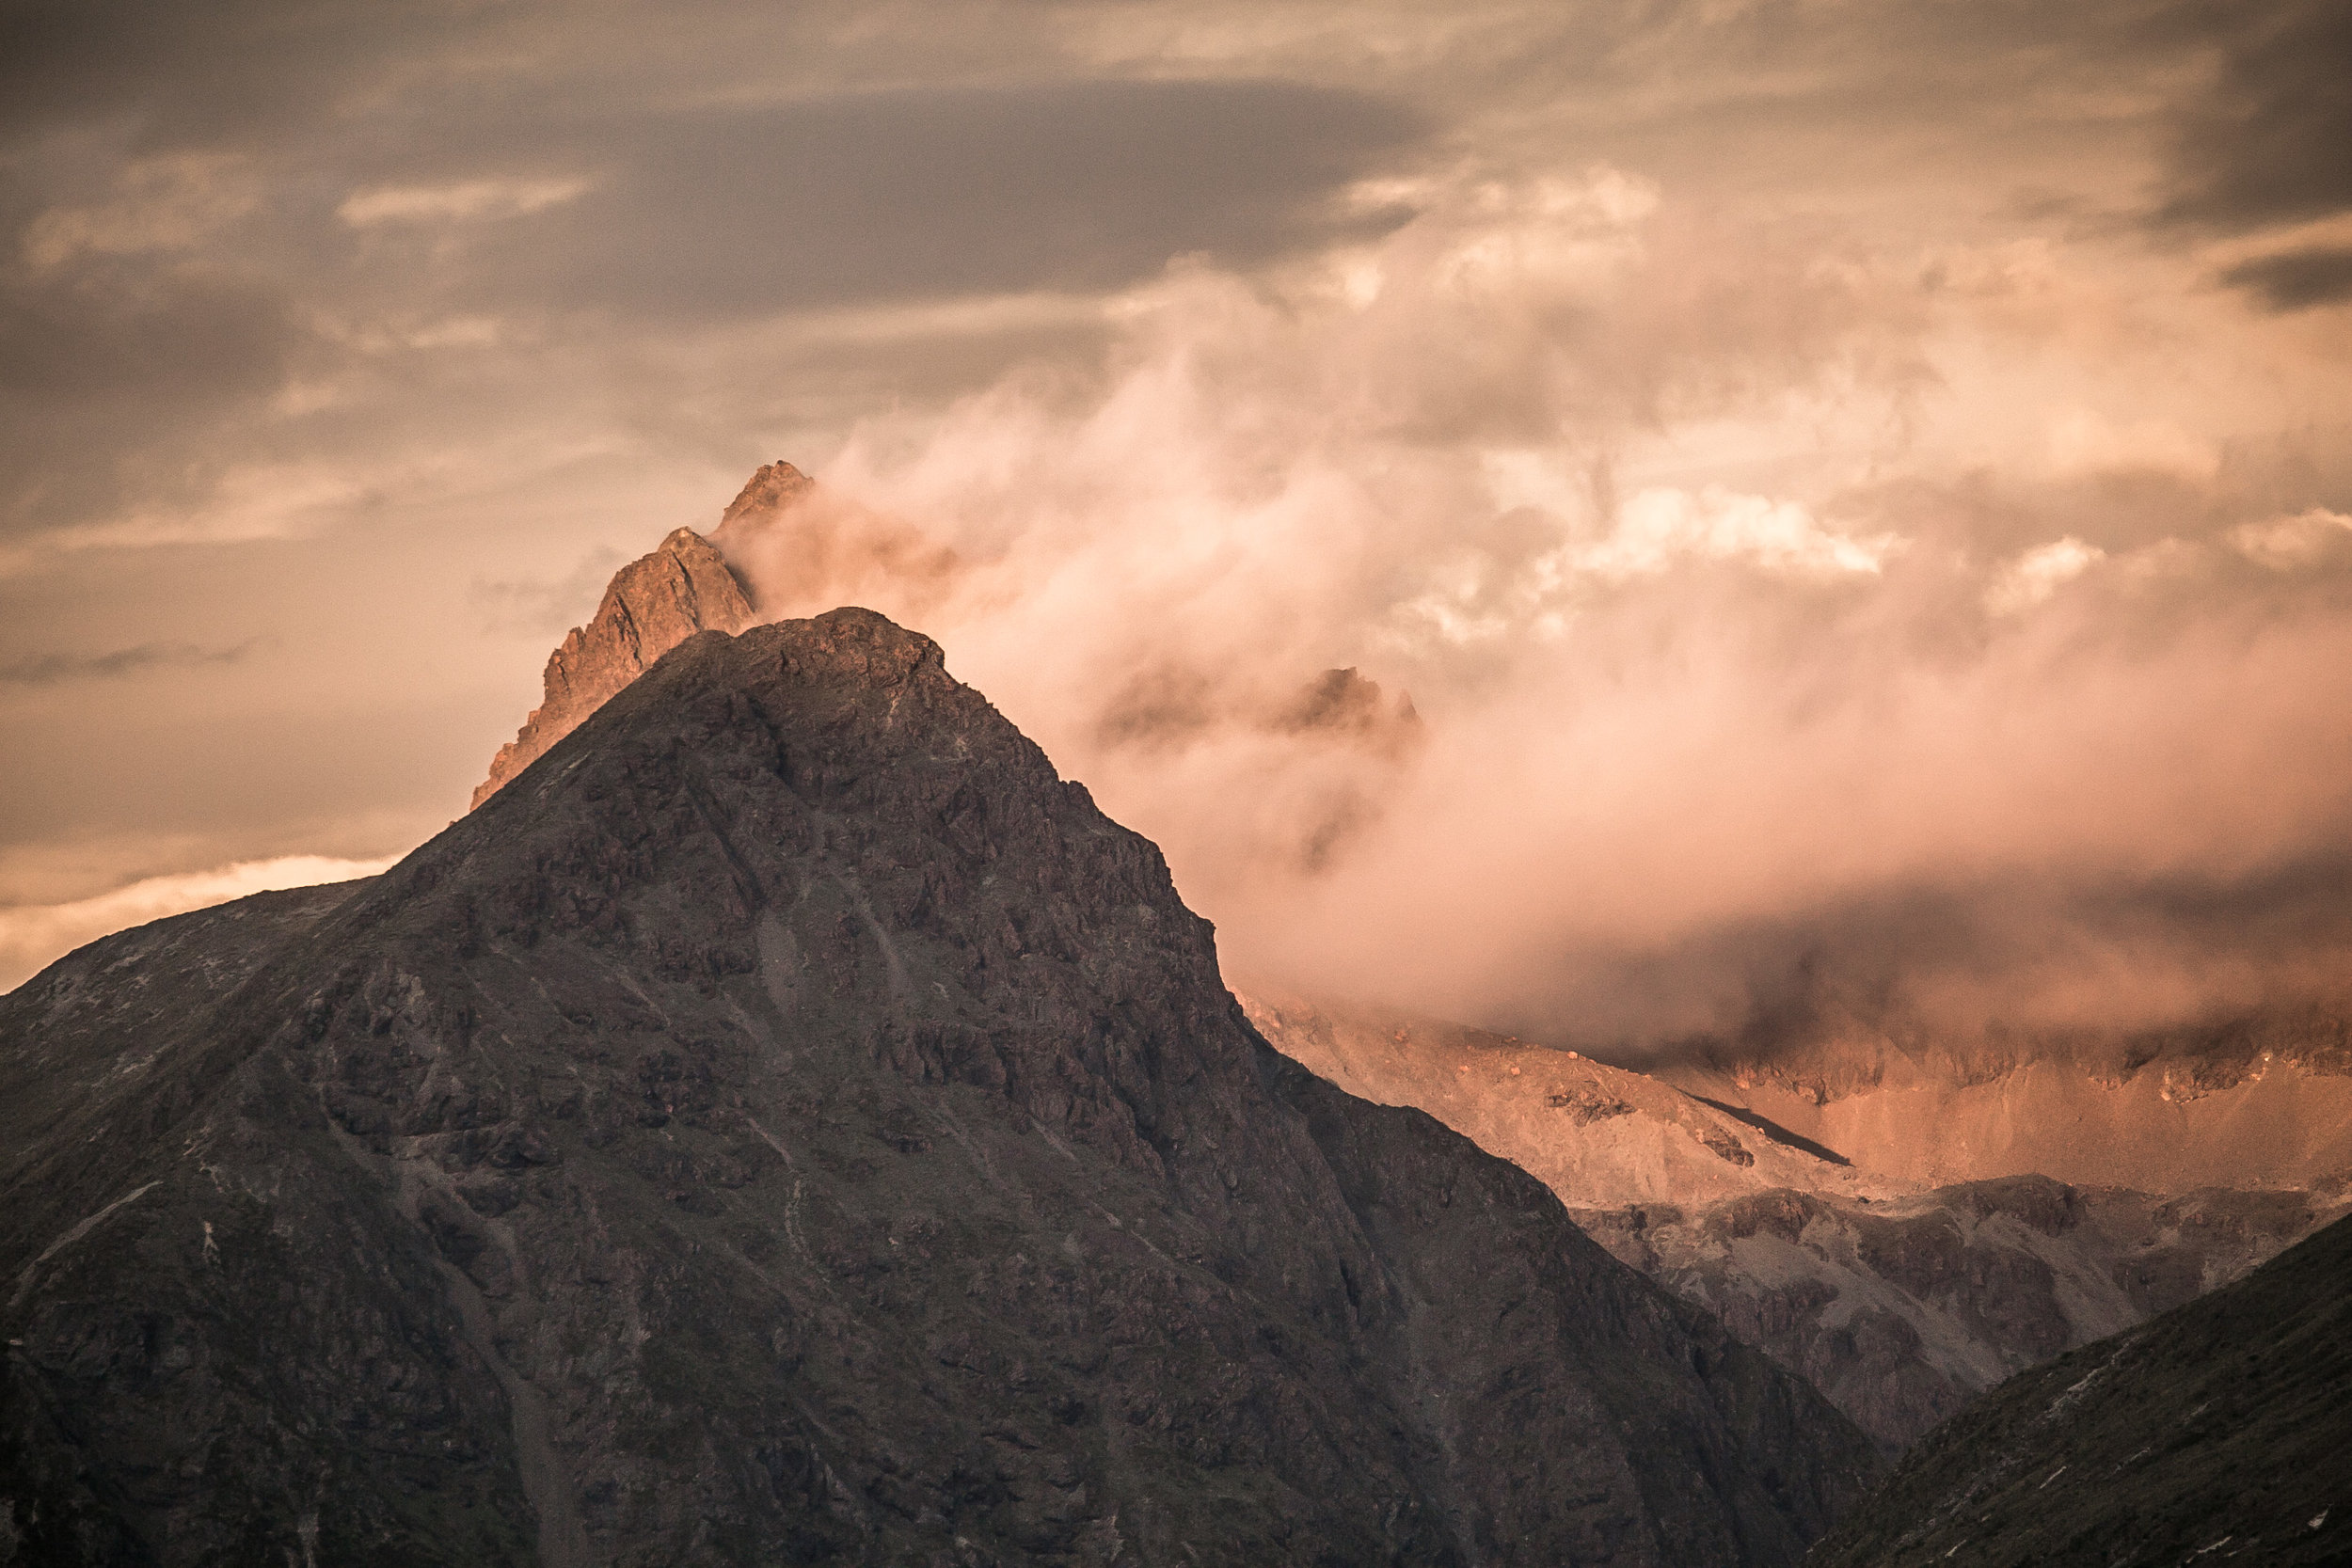 """VIew from the """"mavora walkway"""" section of the trail - Soft evening sunlight settling on New Zealand's rugged mountains on the South Island."""